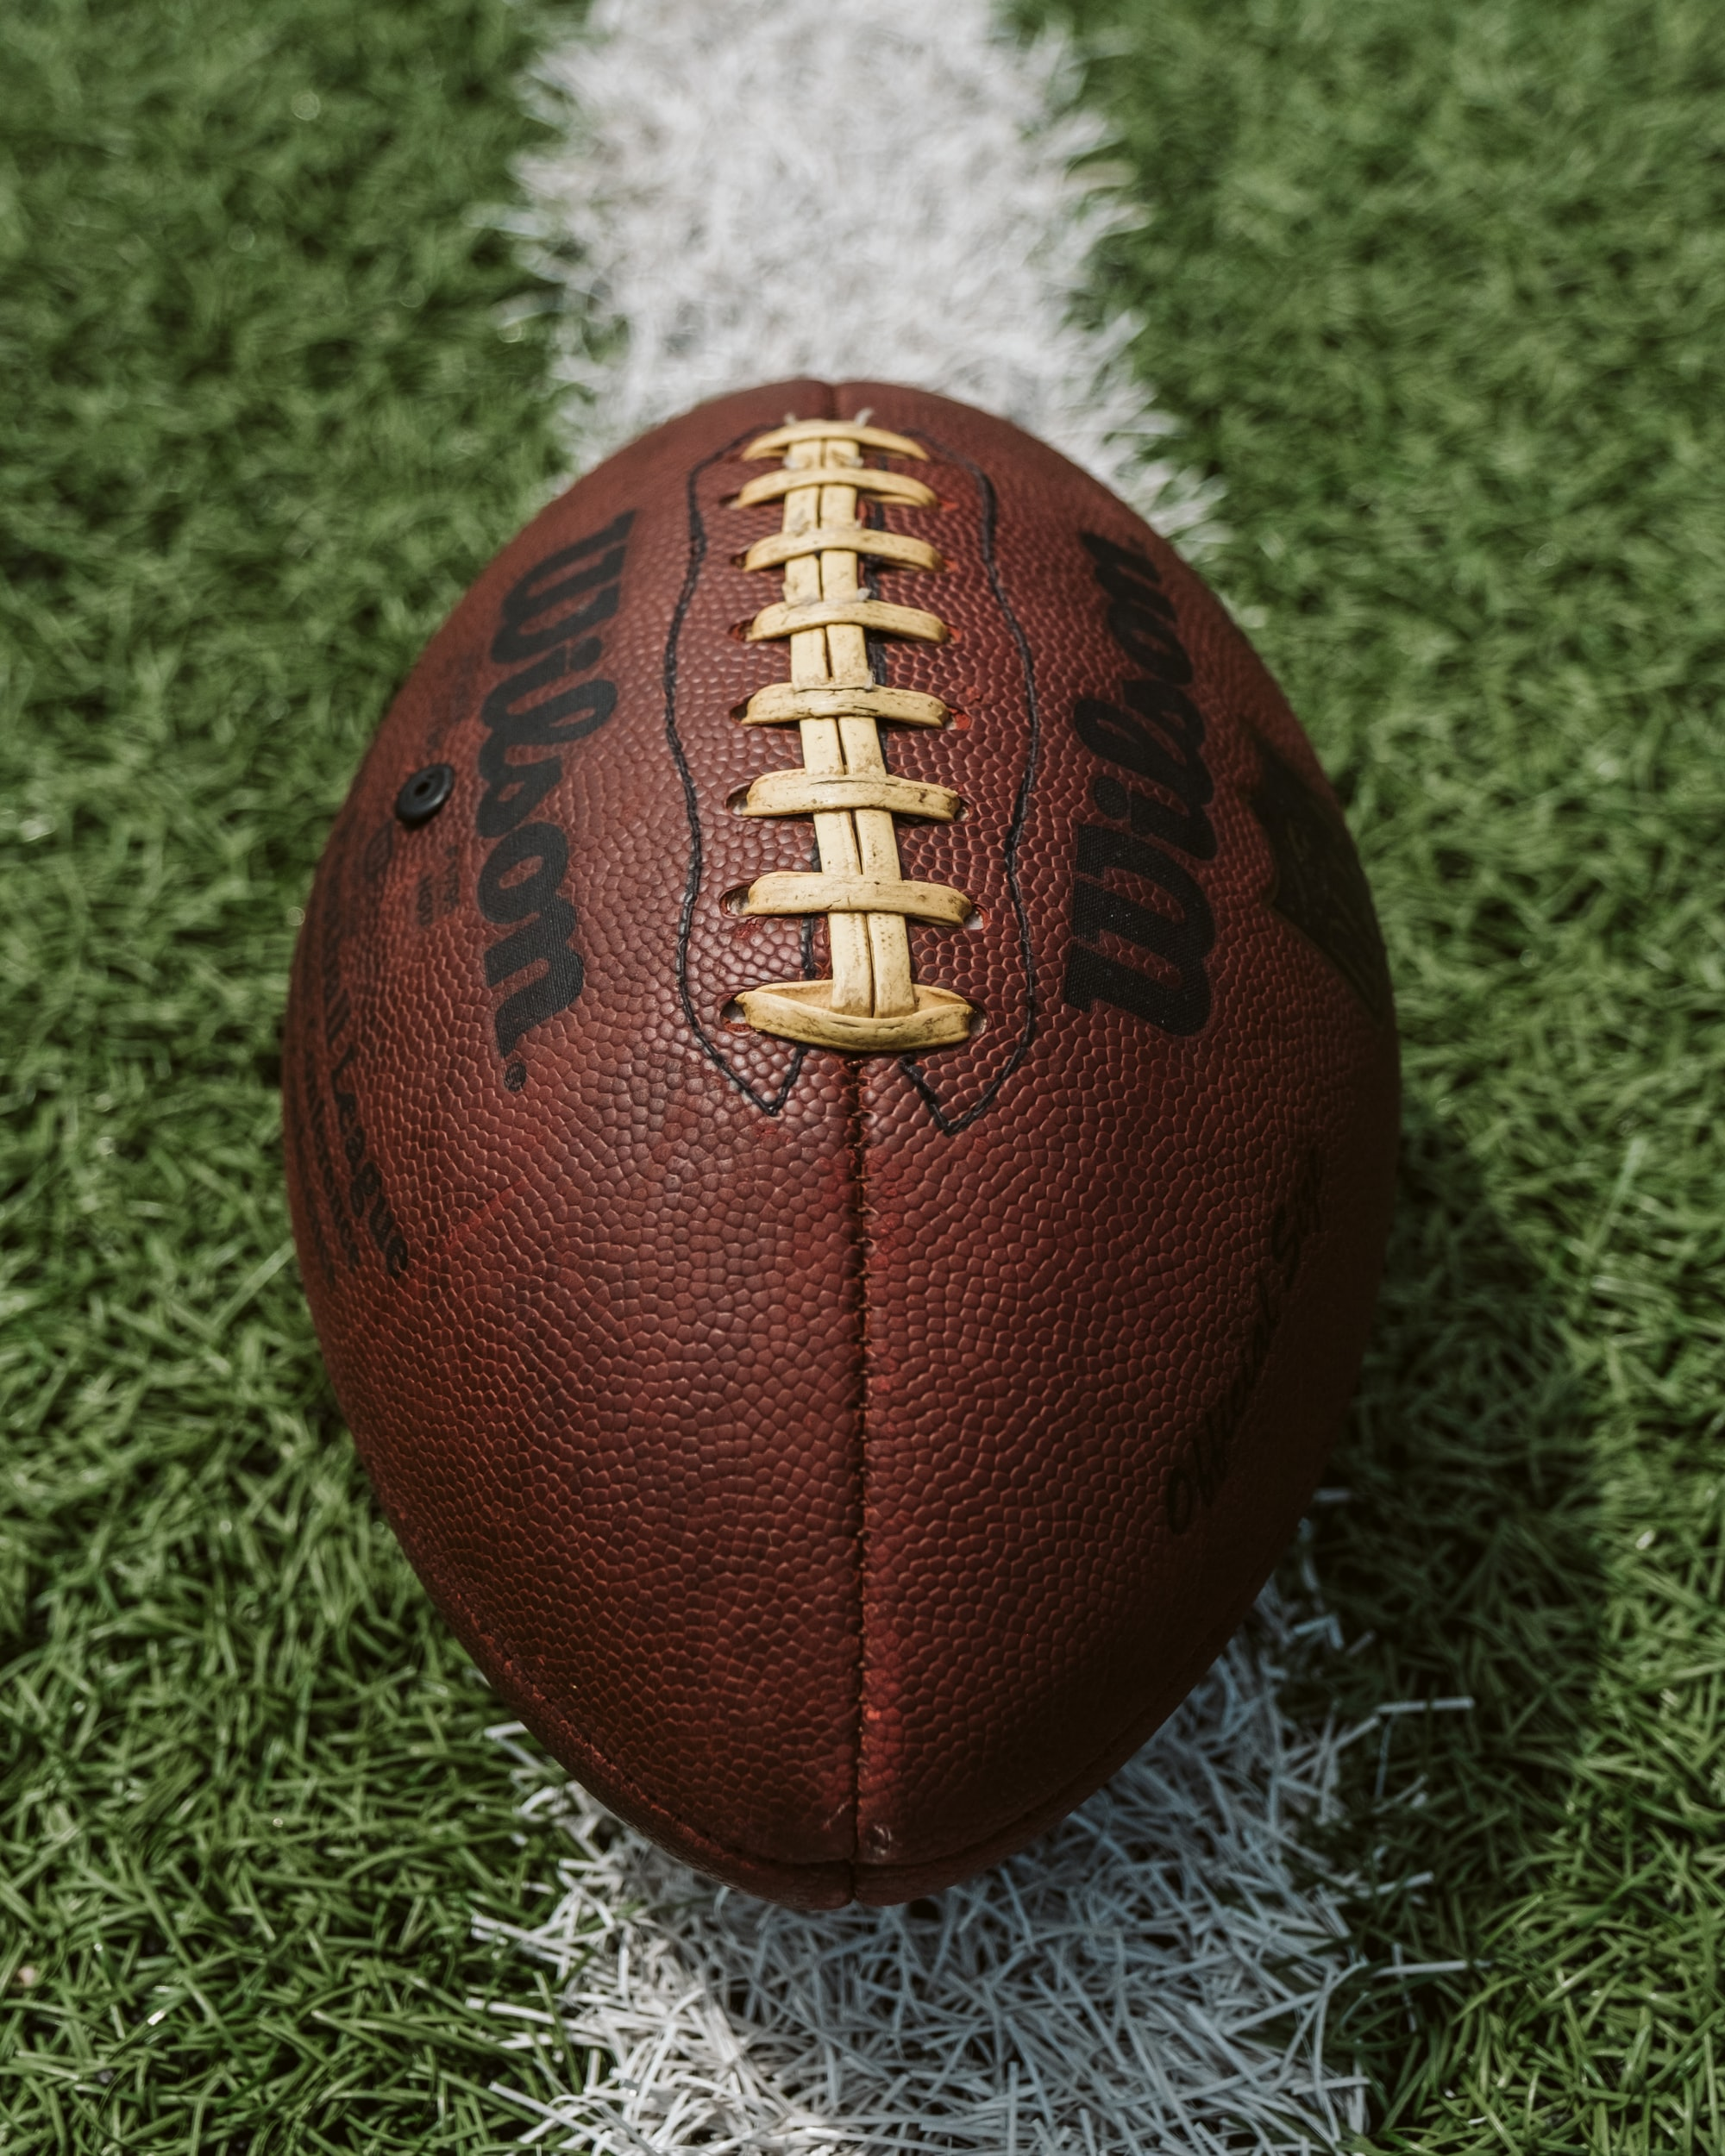 Newsletter #17 - NFL, AI and sporting injuries